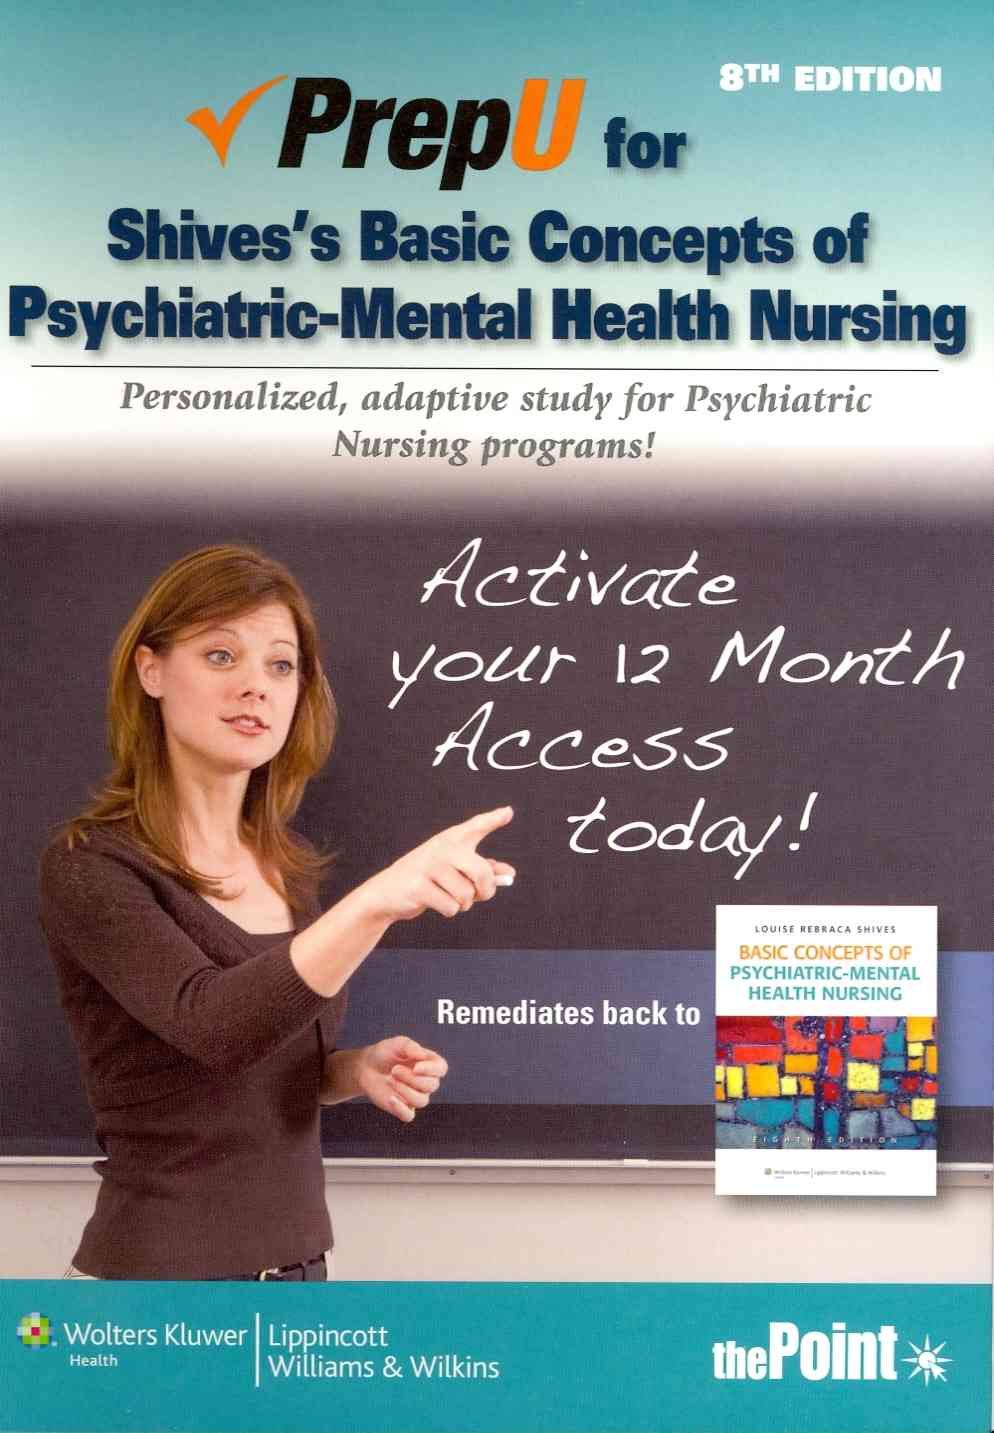 Basic Concepts of Psychiatric-Mental Health Nursing Prepu By Shives, Louise